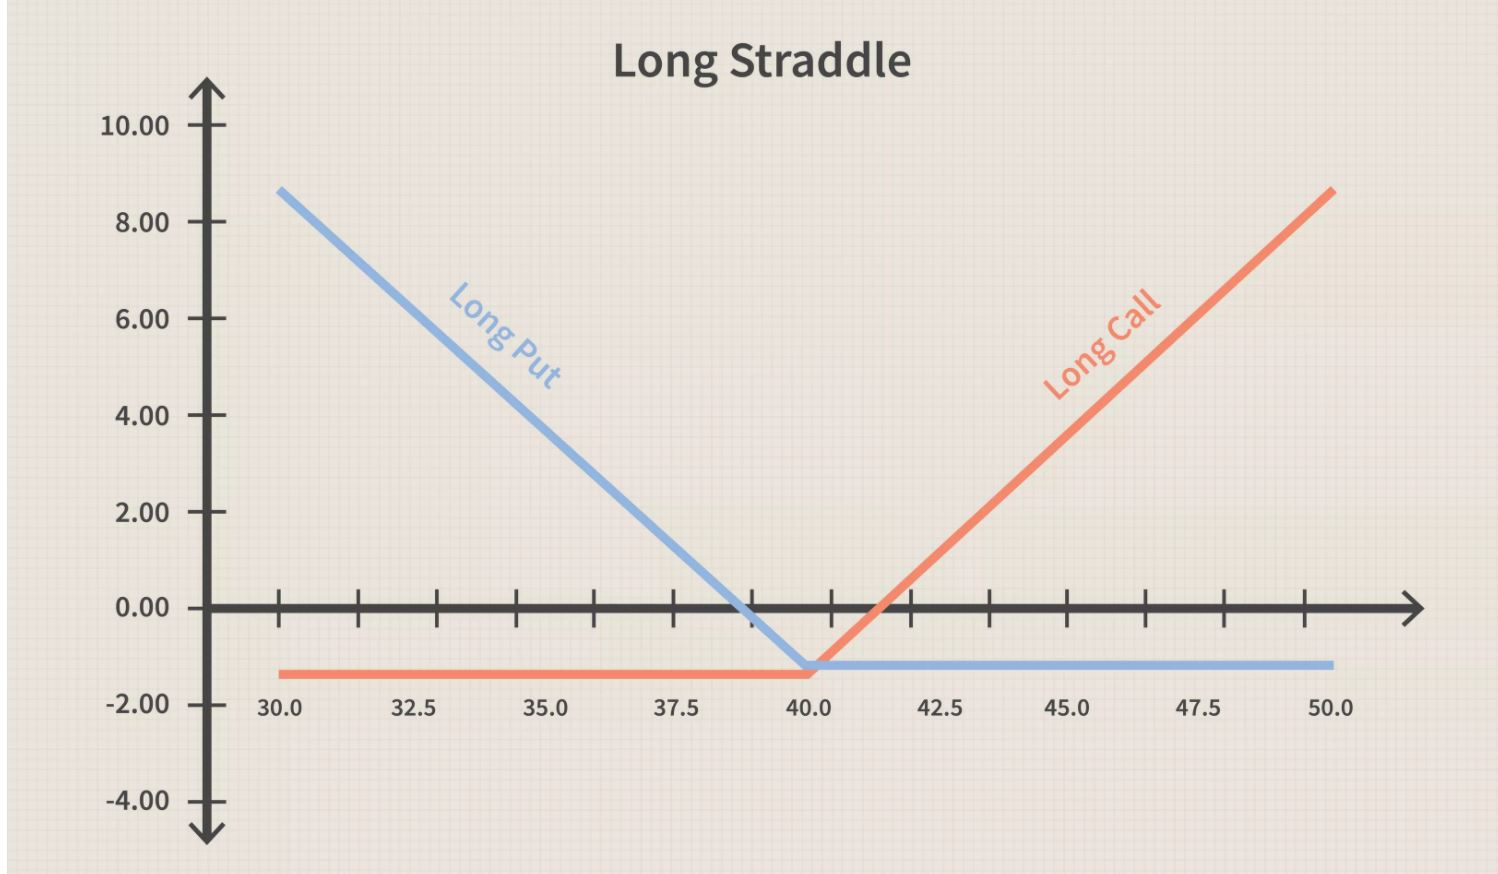 Long straddle options trading strategy